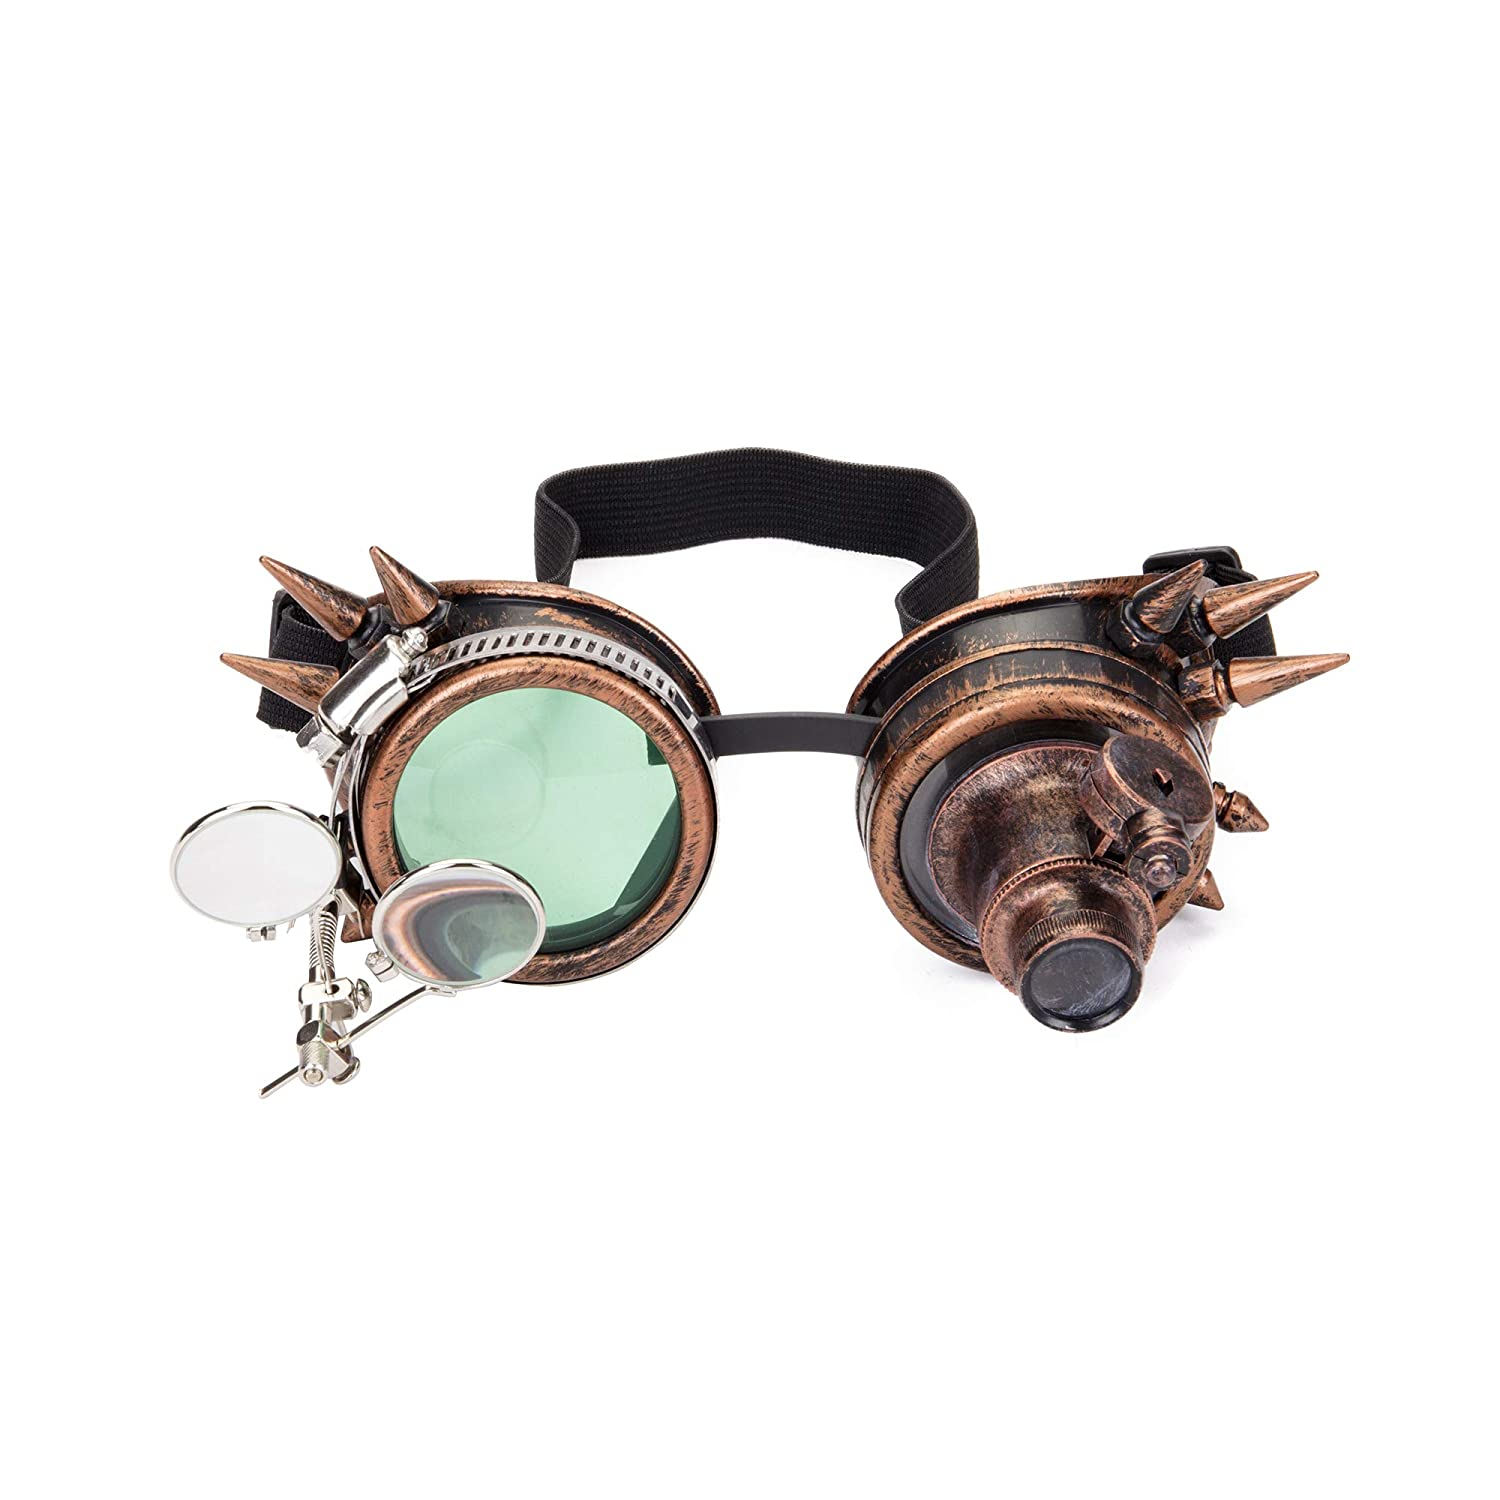 FOCUSSEXY Kaleidoscope Glasses Rave Crystal Prism Steampunk Goggle Fashion FS@MG041B-CN-WLJ01